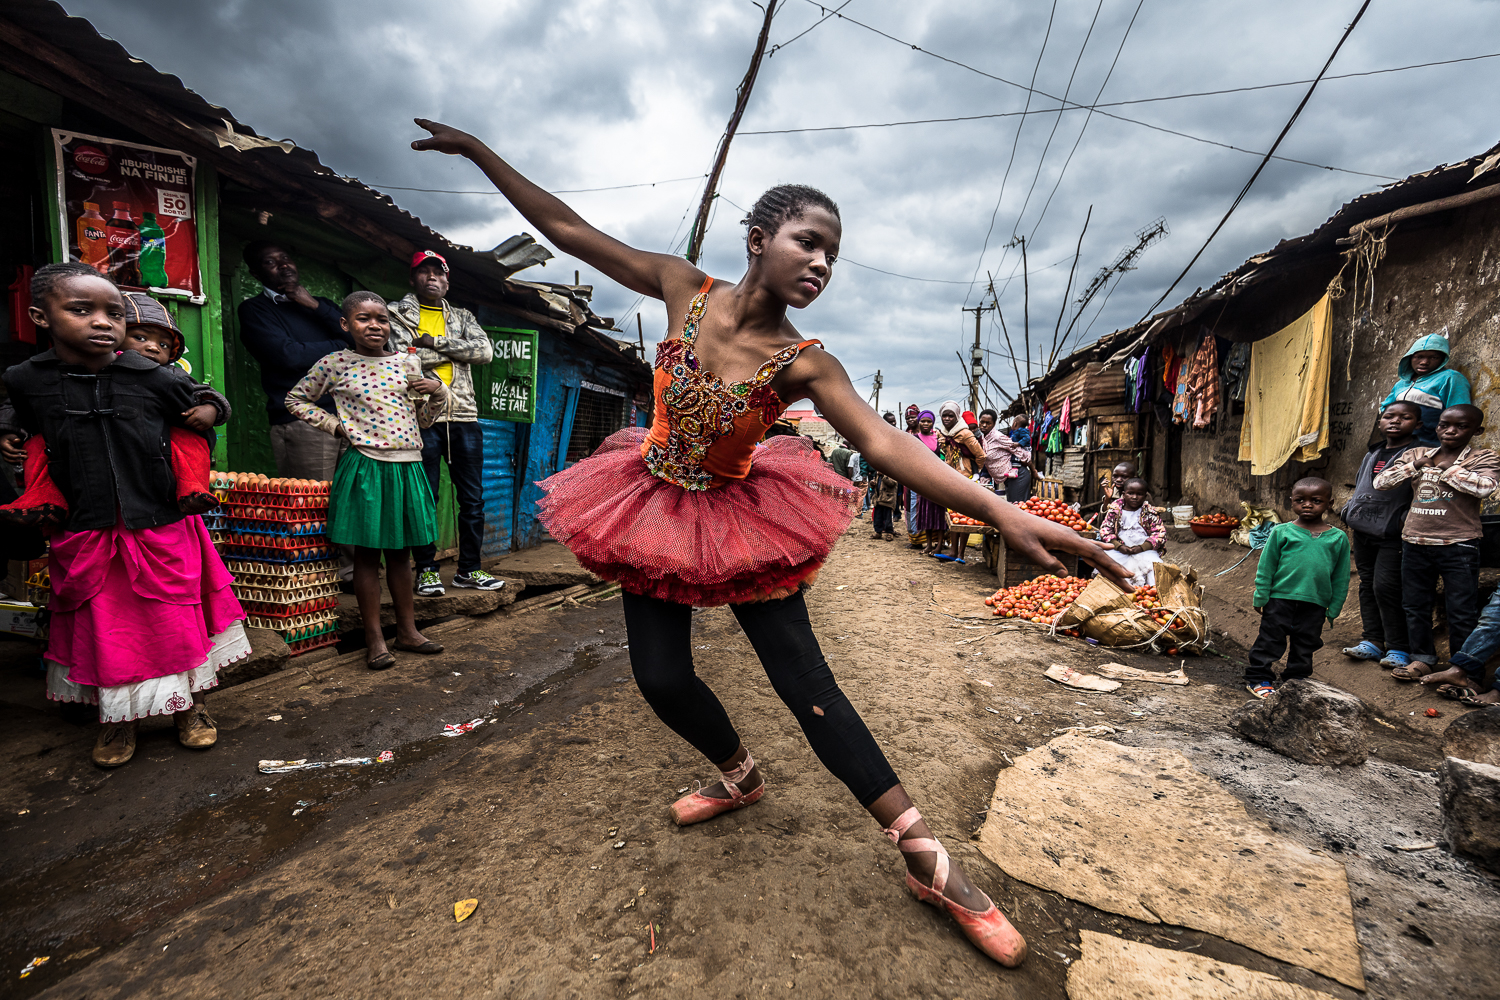 Elsie Ayoo, 16, a young passionate ballet dancer, trains along a